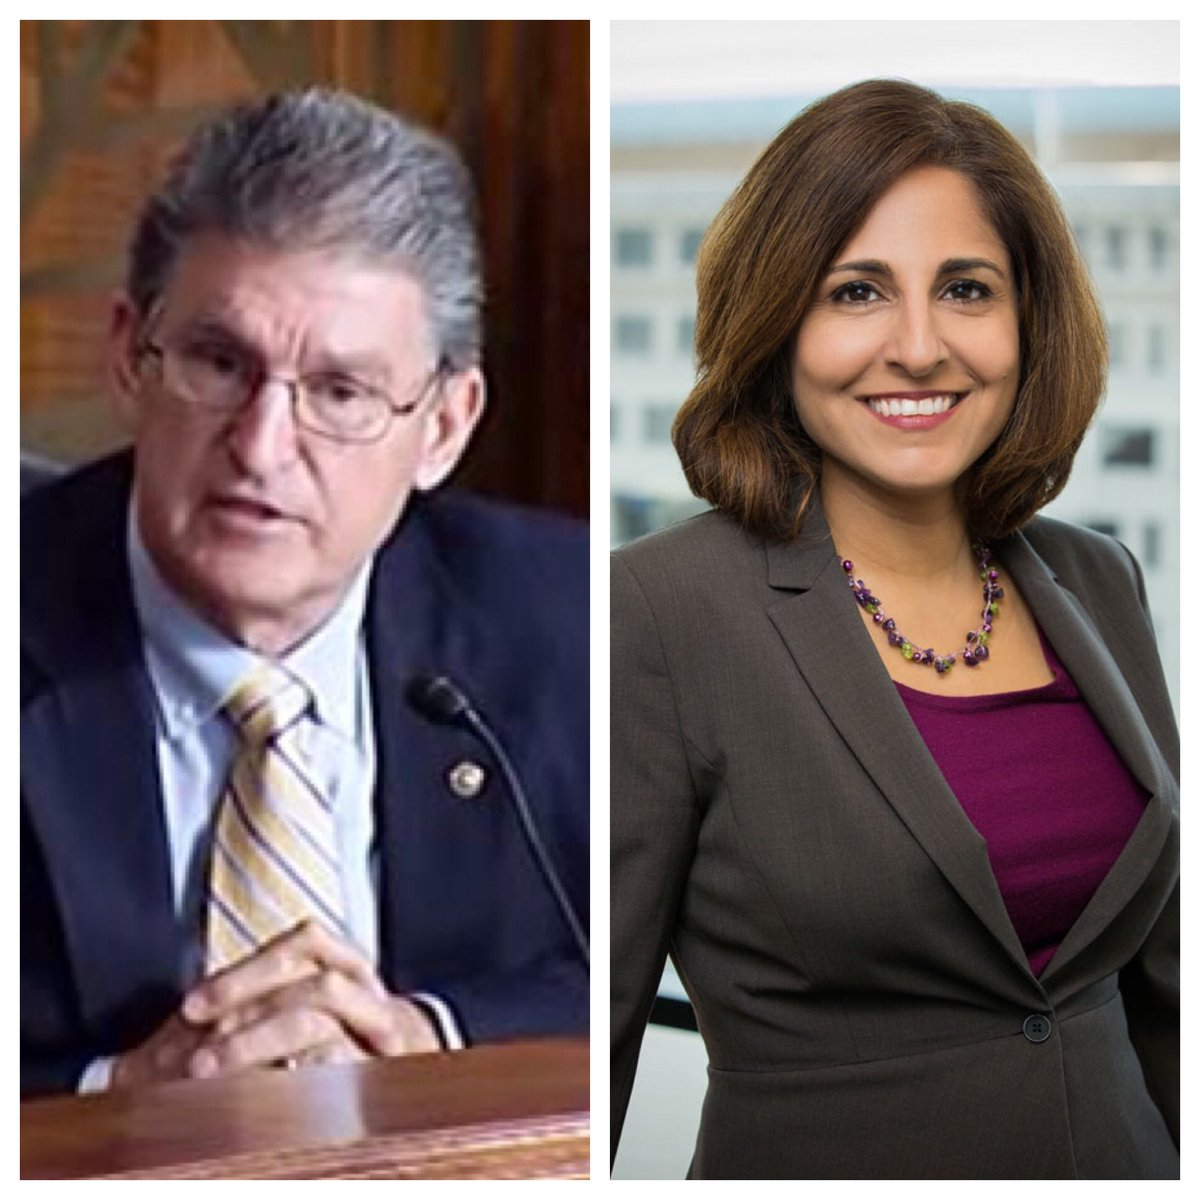 I'm more angered at a weak man who is offended by hard hitting tweets than I am by the strong, bad ass woman who wrote them.  #NeeraTanden #FreshVoicesRise